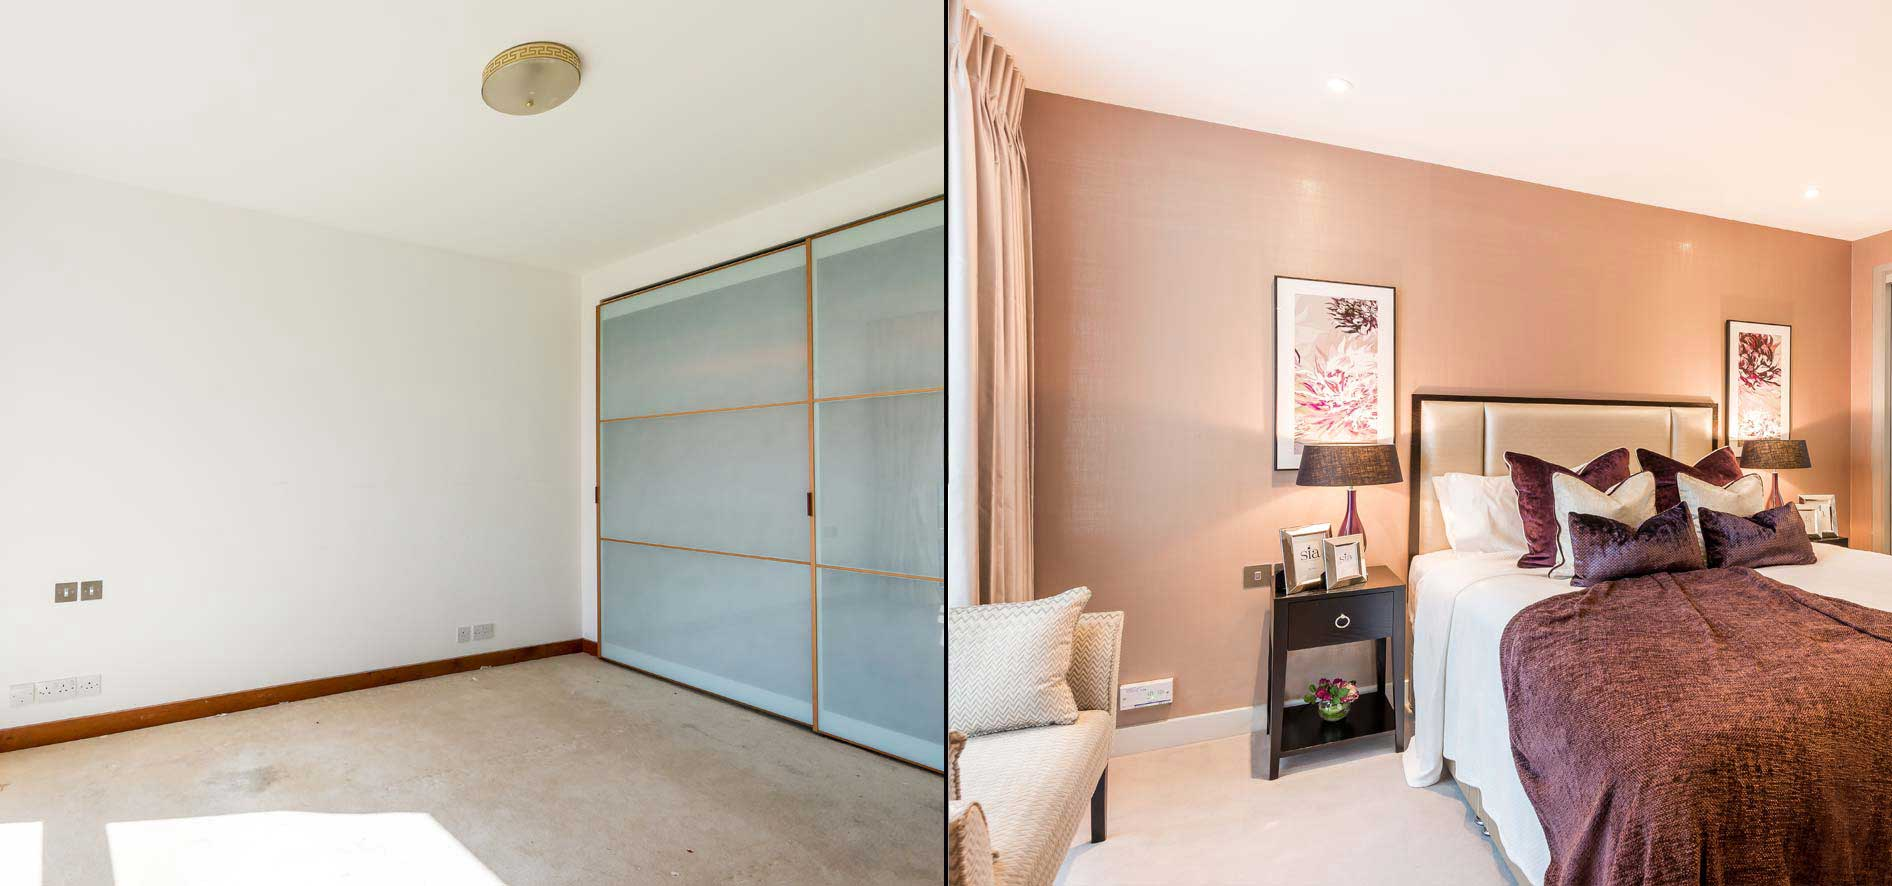 403-The-Pavilion-St-Johns-Wood-Road-before-after-BEDROOM2